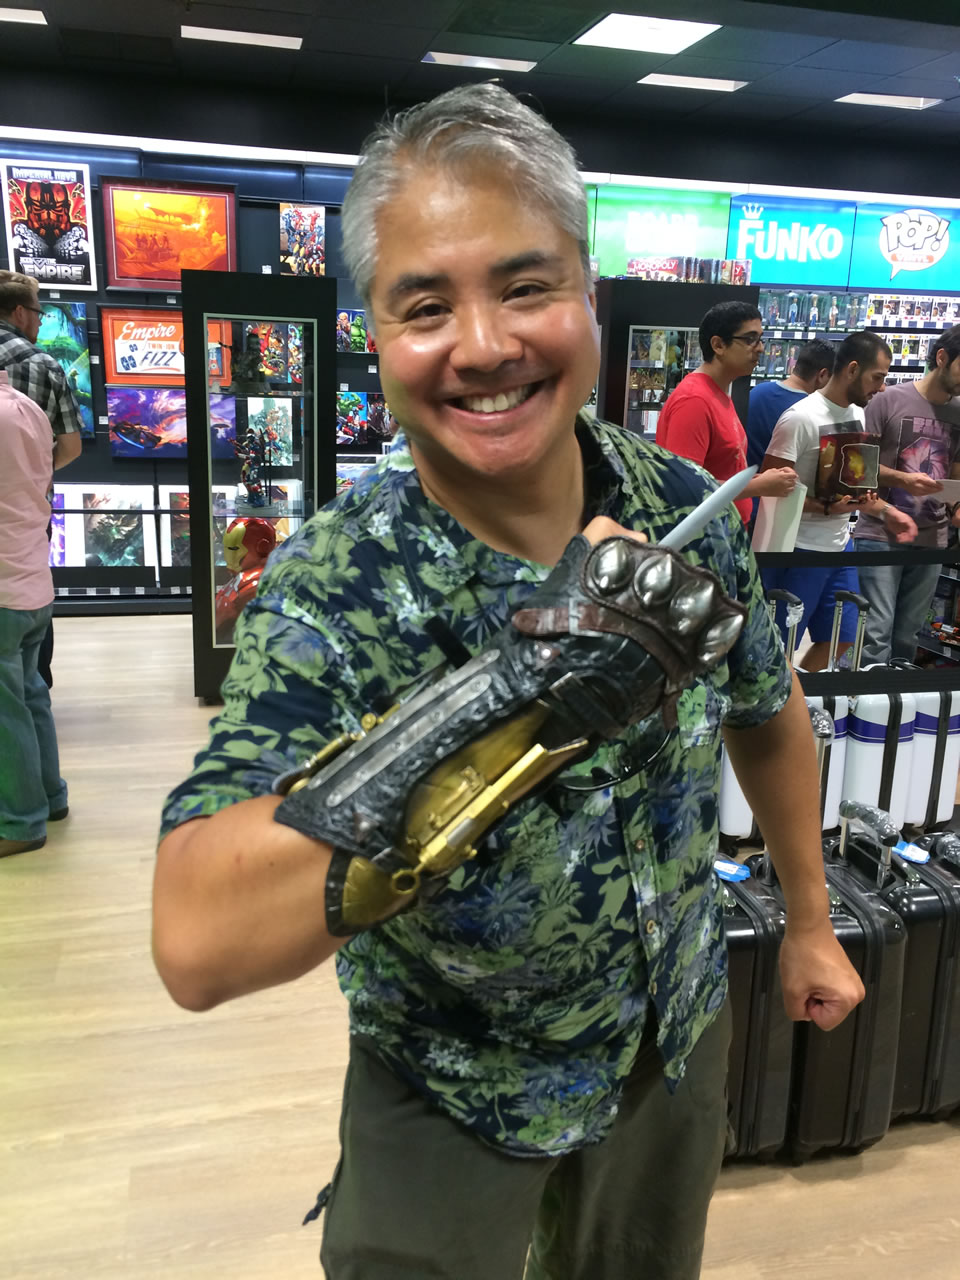 67 thinkgeek store - joey and assassins creed gauntlet